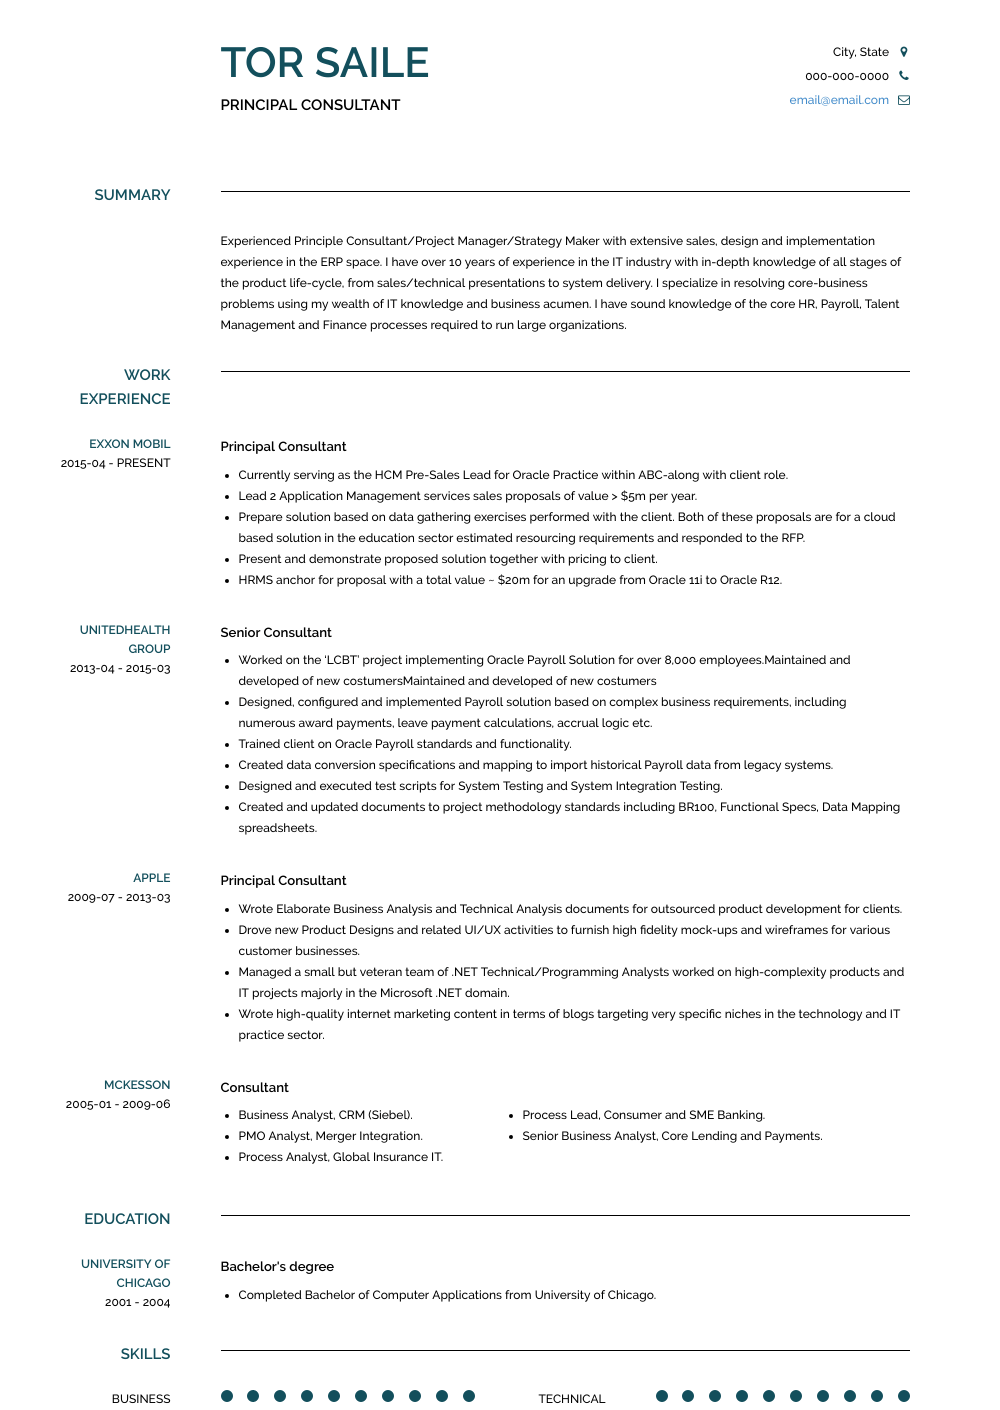 Consulting Resume Examples | Consulting Resume Samples Templates Visualcv